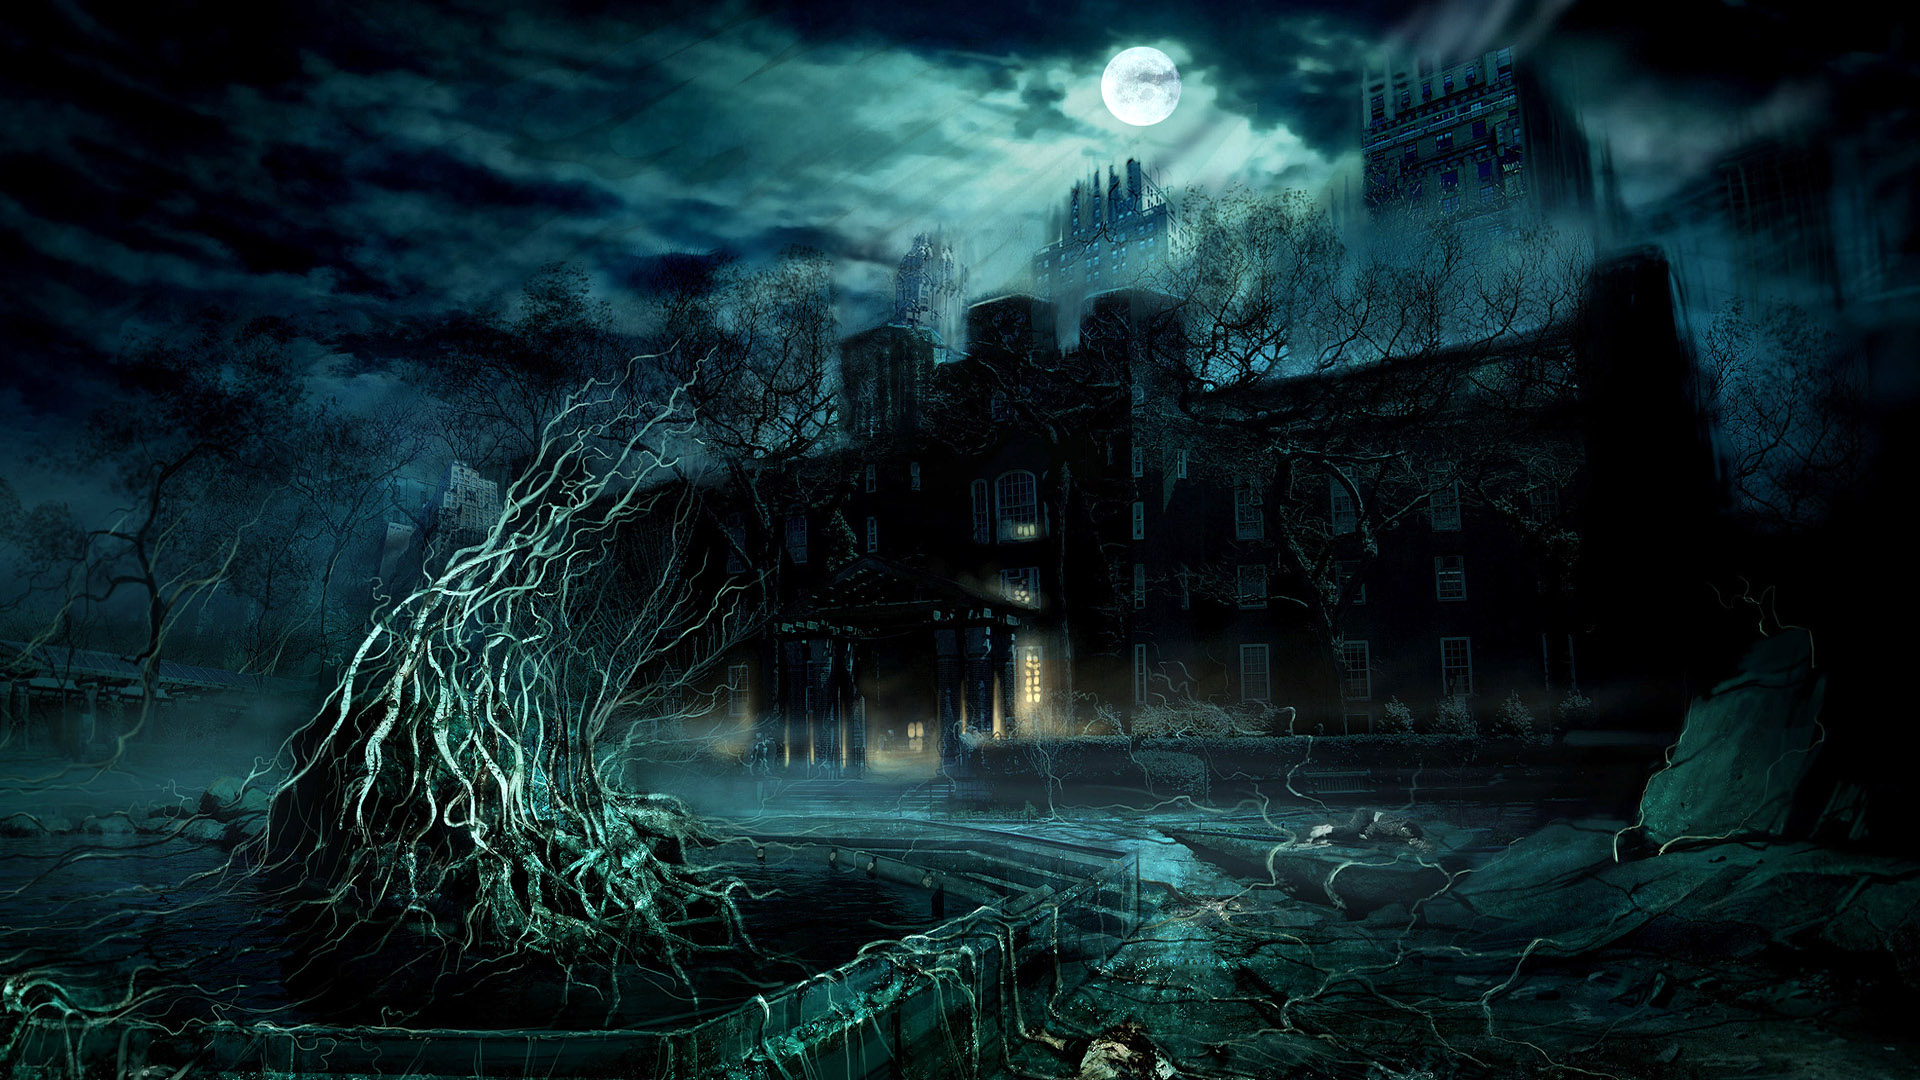 wallpapers haunted ps3 mansion background cool wallpaper 1920x1080